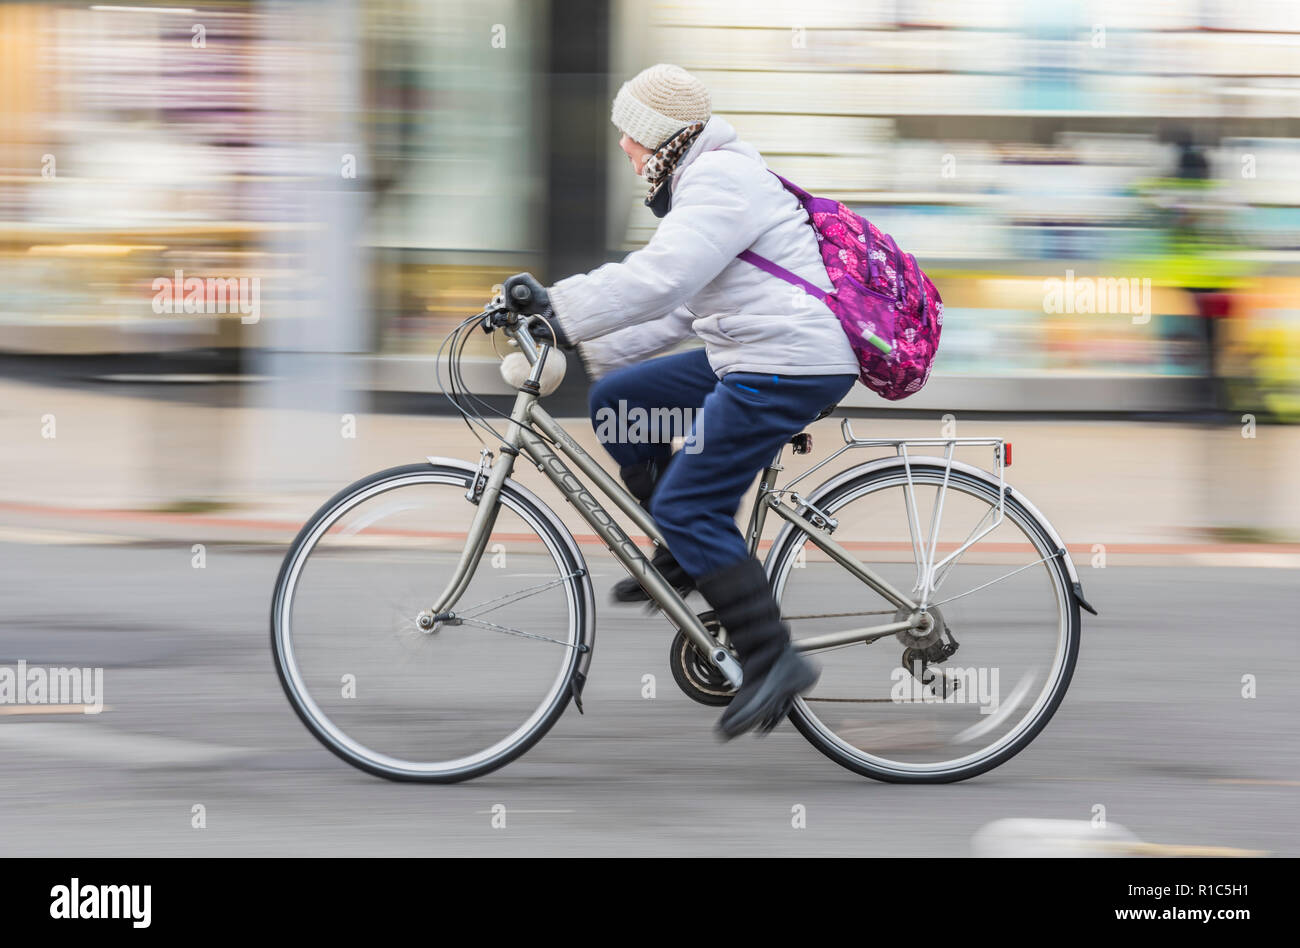 Side view of middle aged woman riding a Ridgeback bicycle wearing hat, coat & backpack, showing motion blur, UK. Female cycling. Female cyclist. - Stock Image